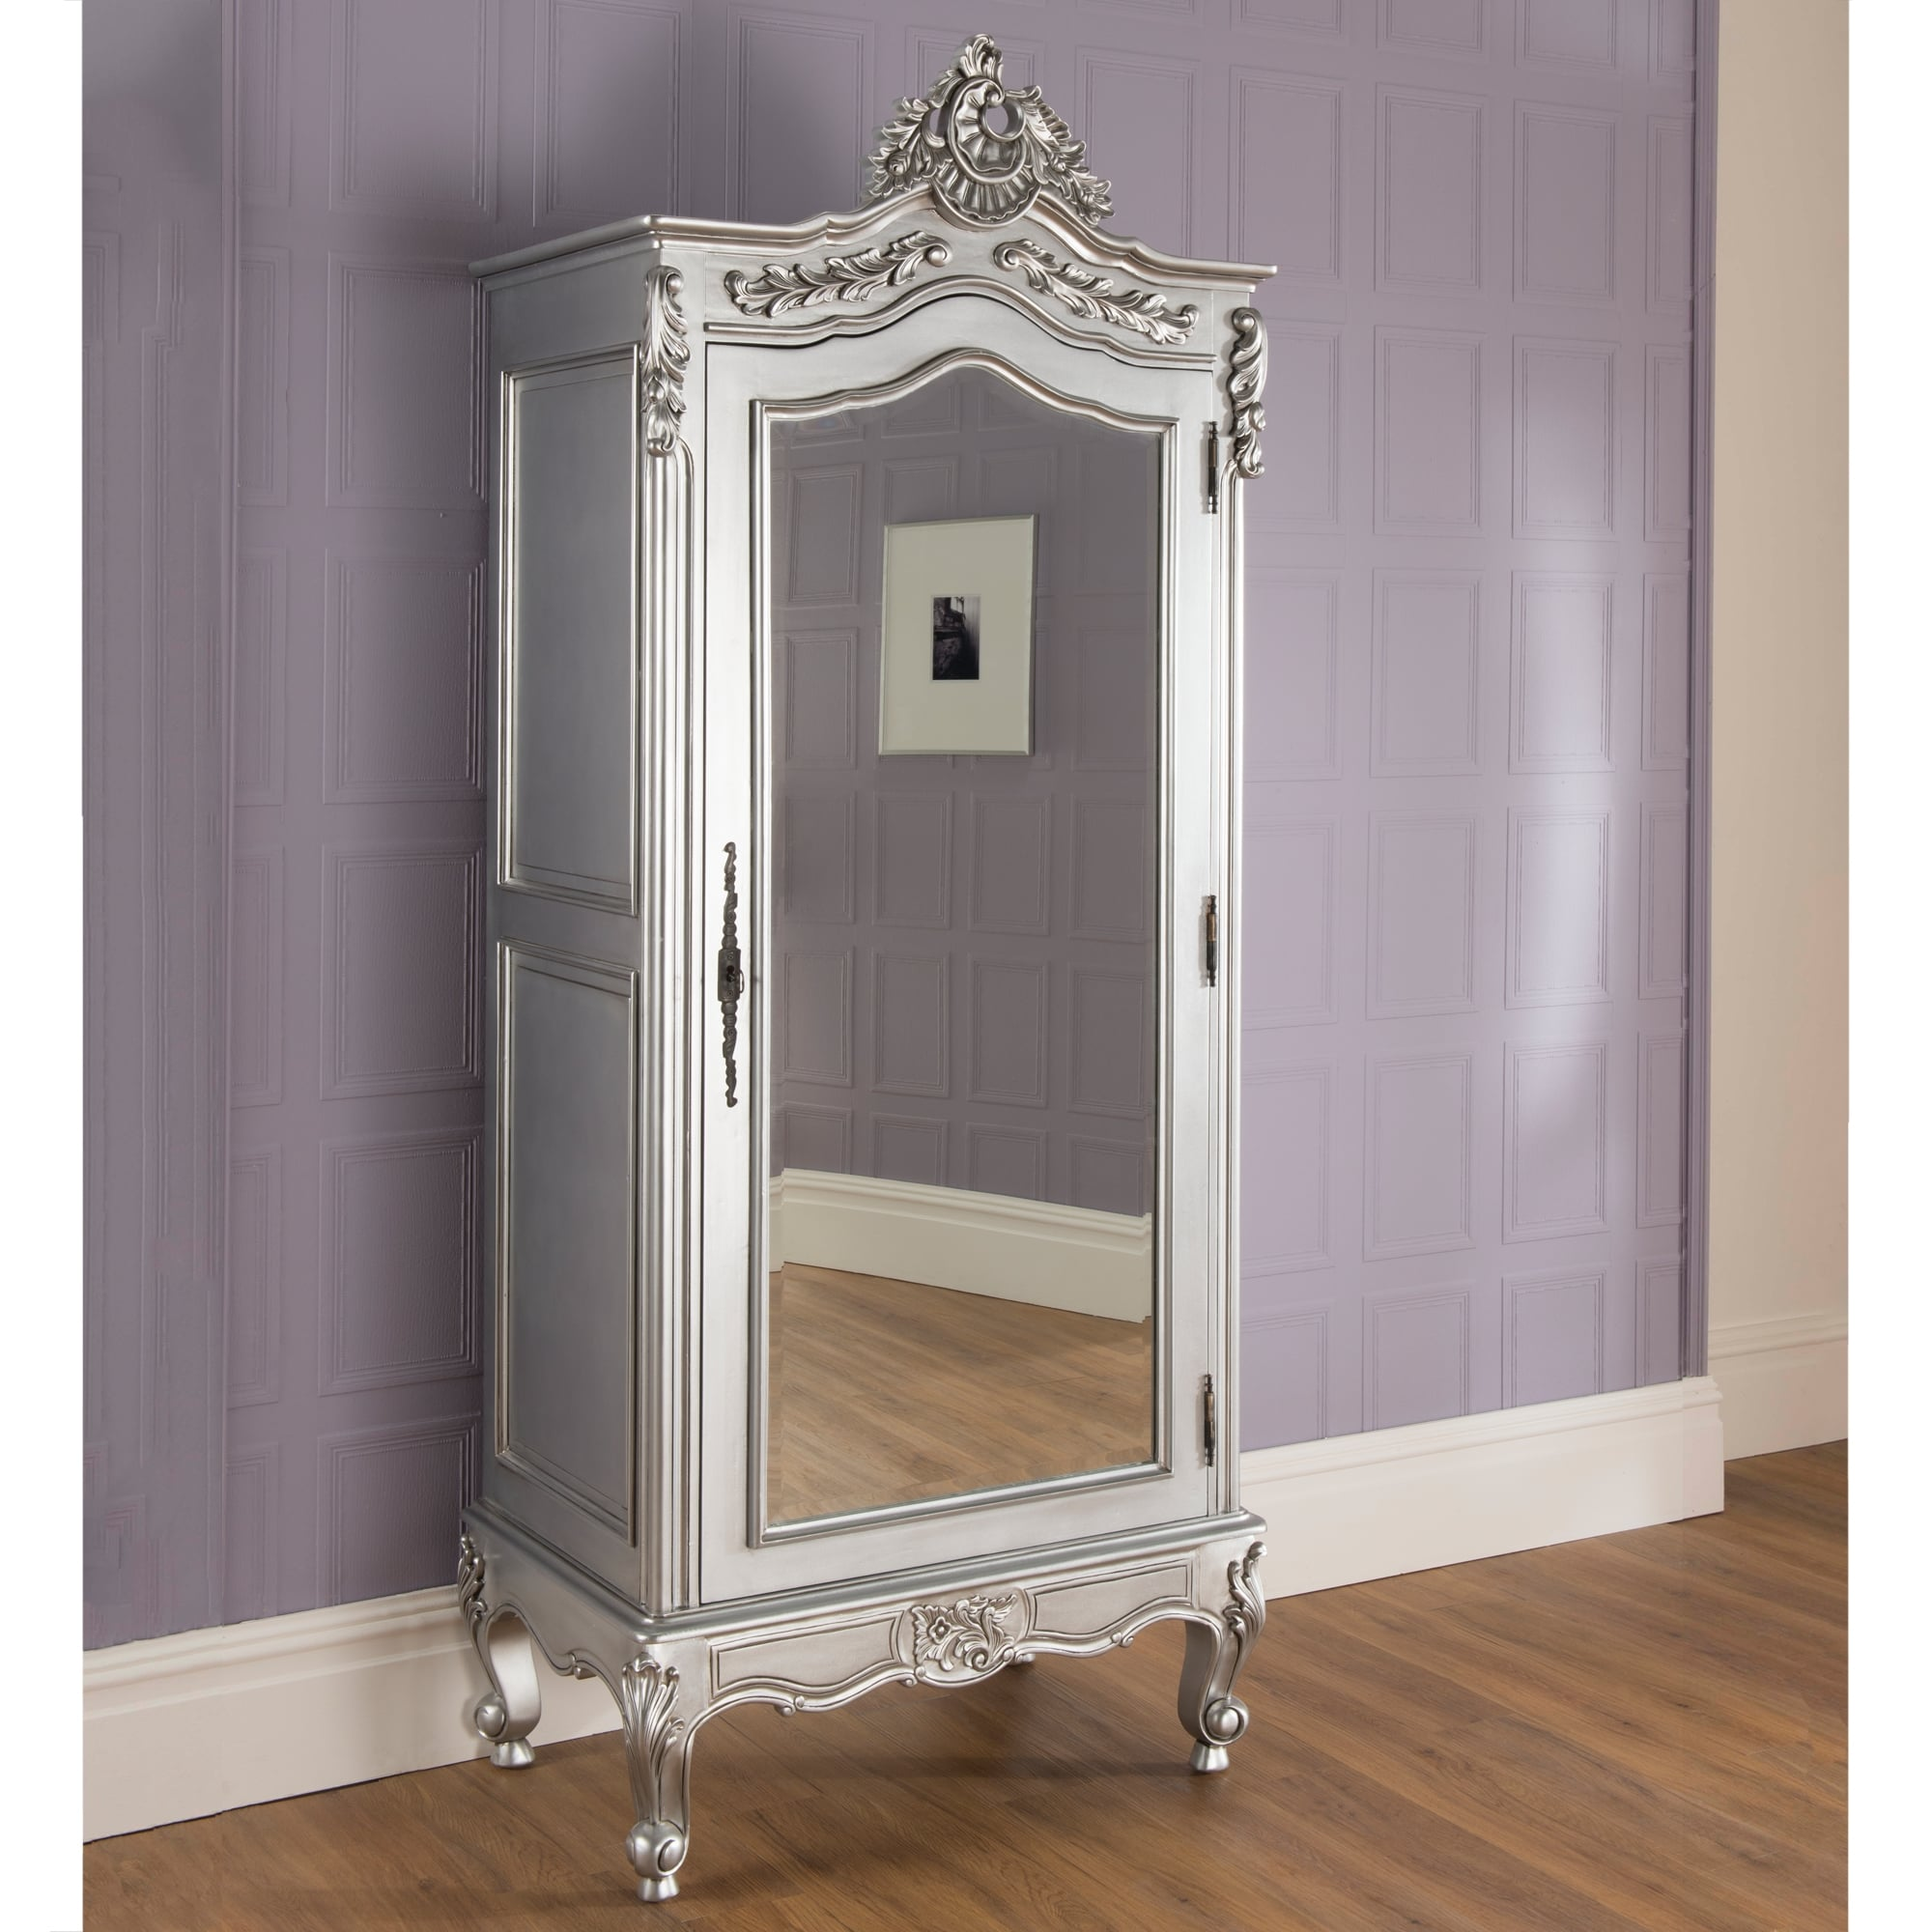 fascinante com and wayfair armoire wardrobes armoires love jewelry wardrobe youll walmart talentneeds